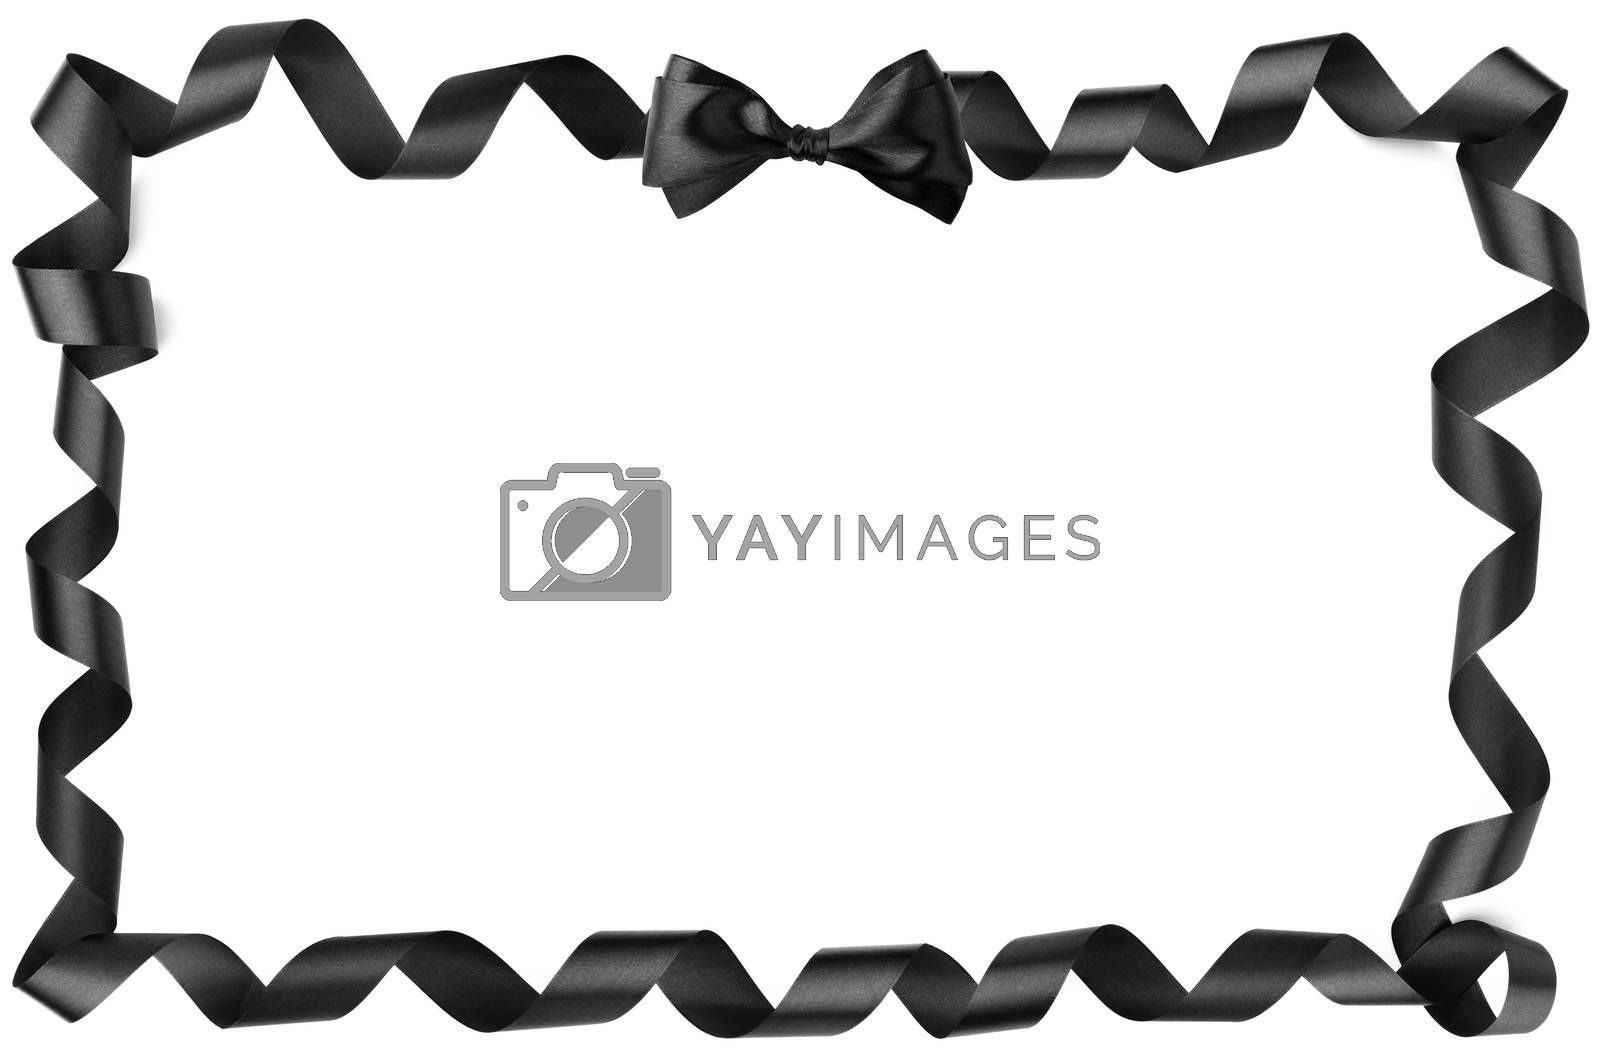 Black spiral curly silk ribbon and bow border frame corner design isolated on white background, Black friday gift sale design concept, copy space for text